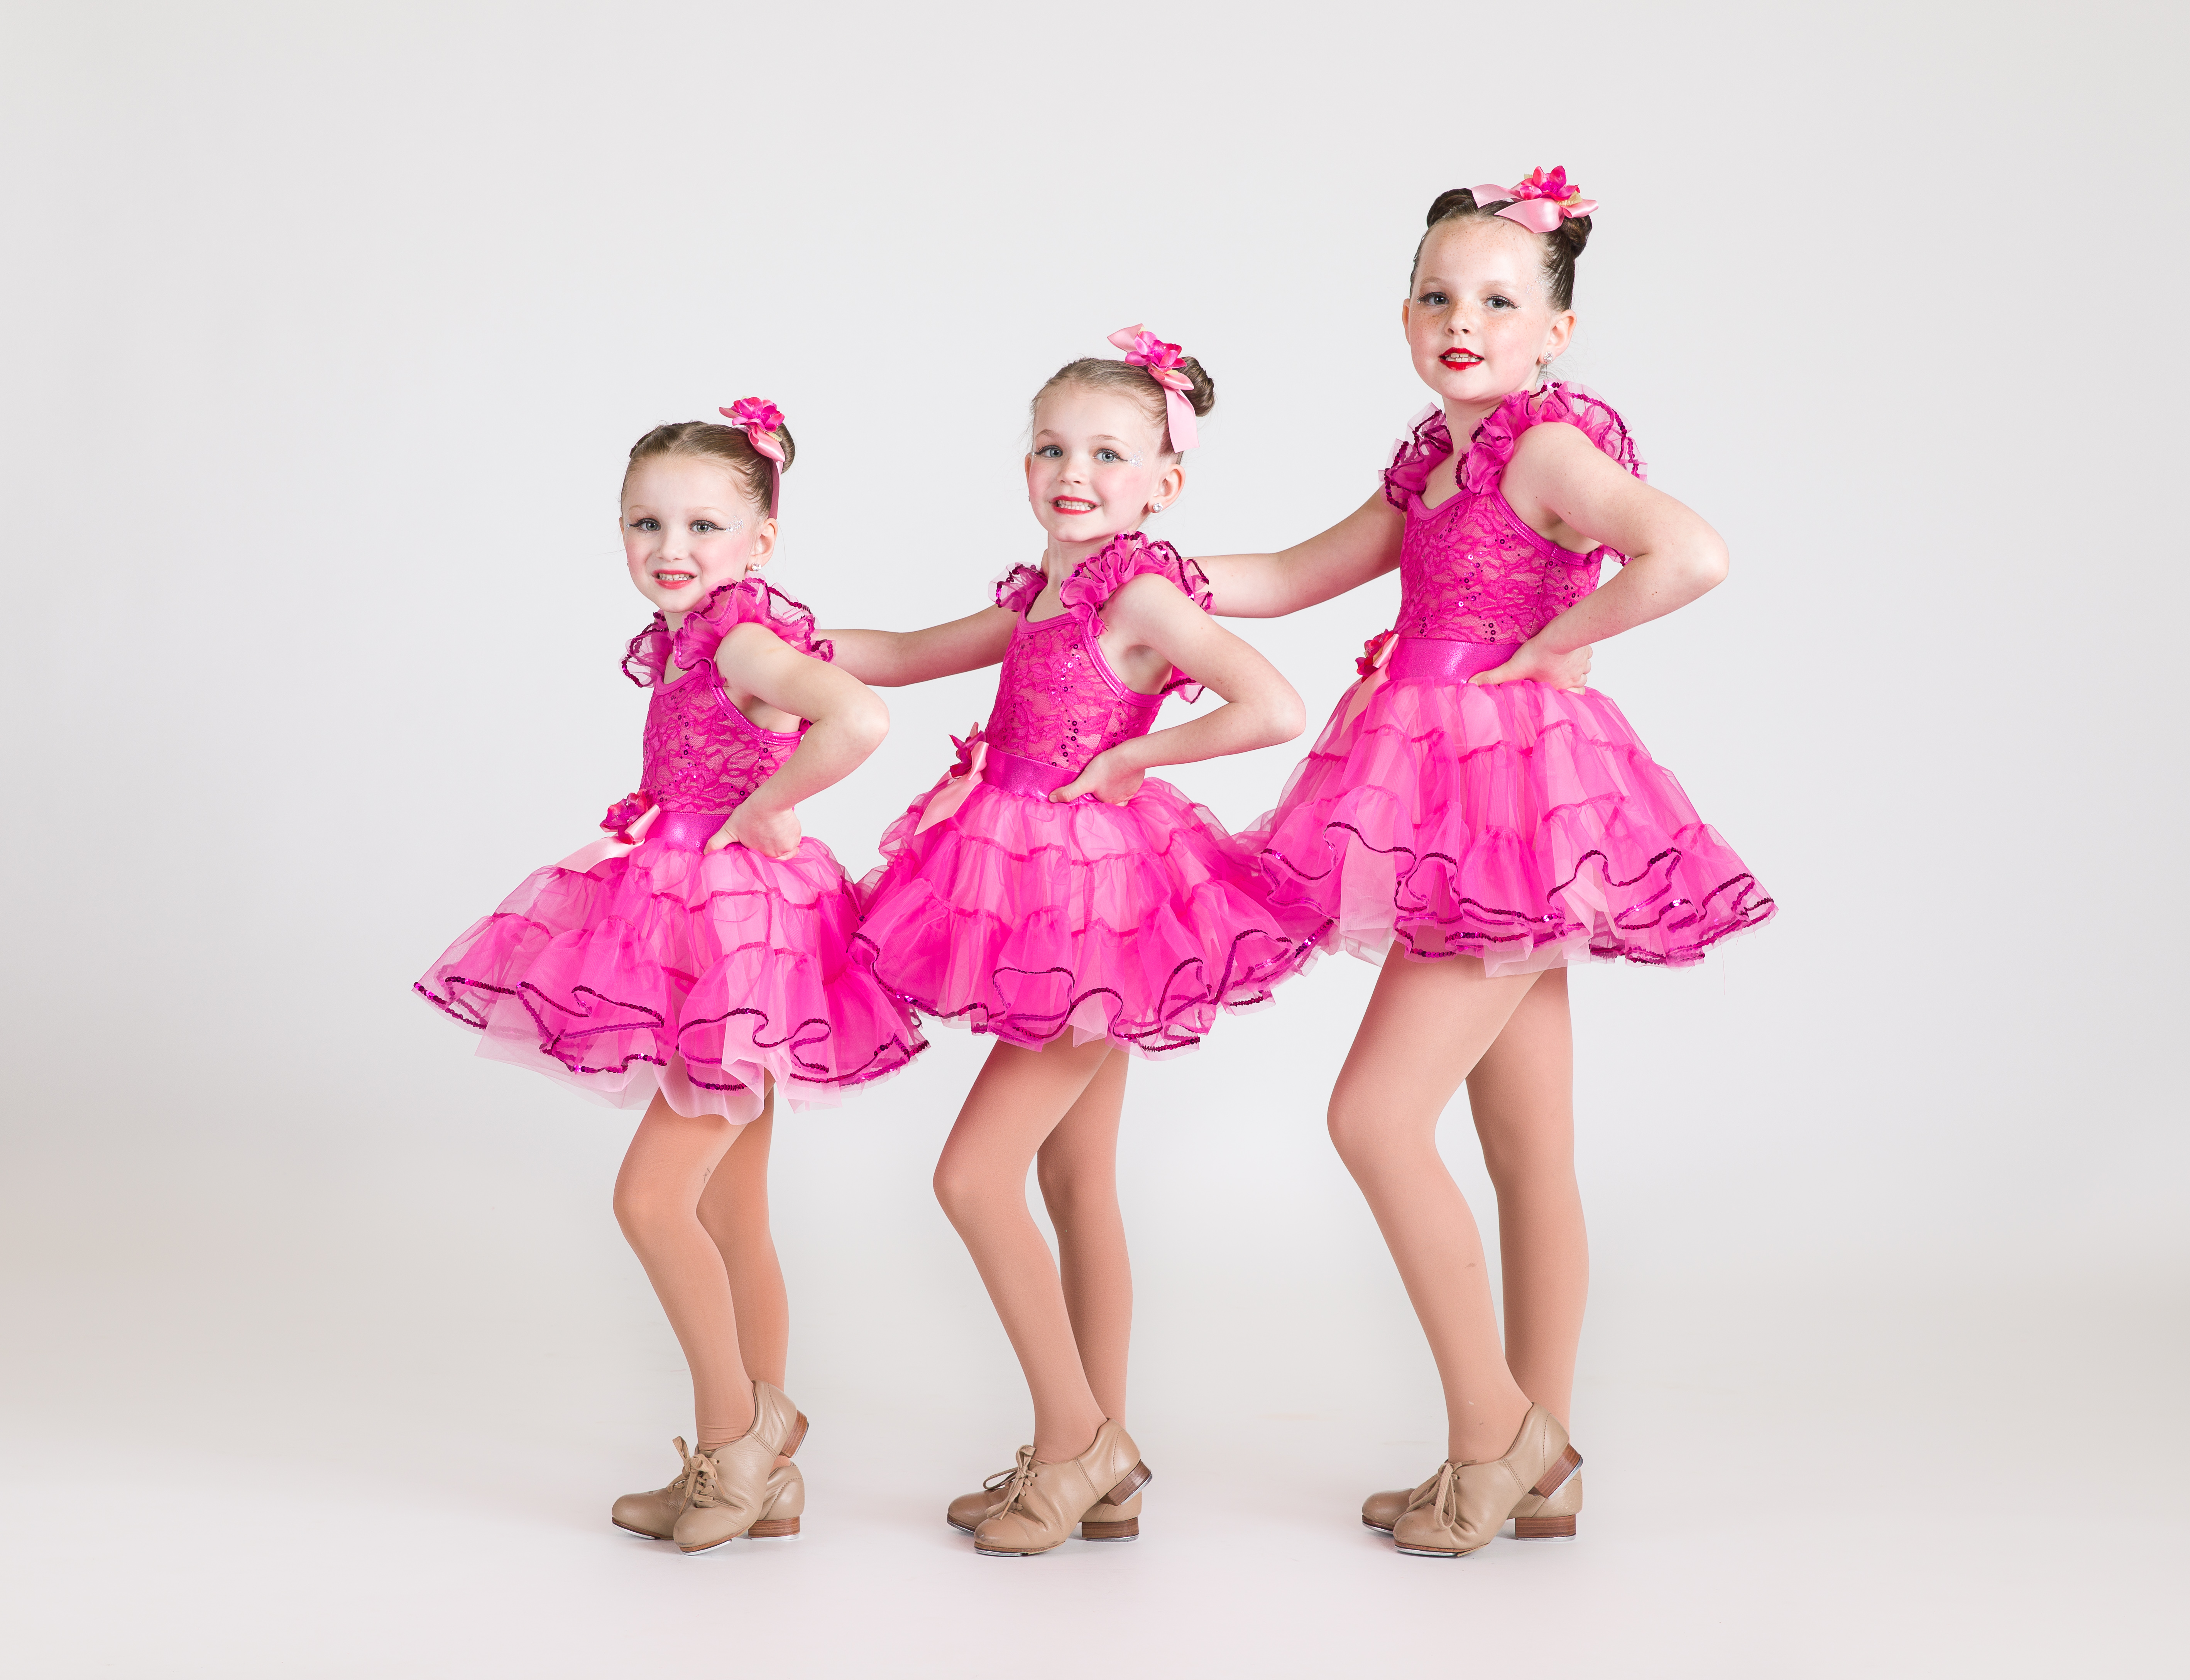 2019-4-13-the-dance-spot-recital3600-Pri